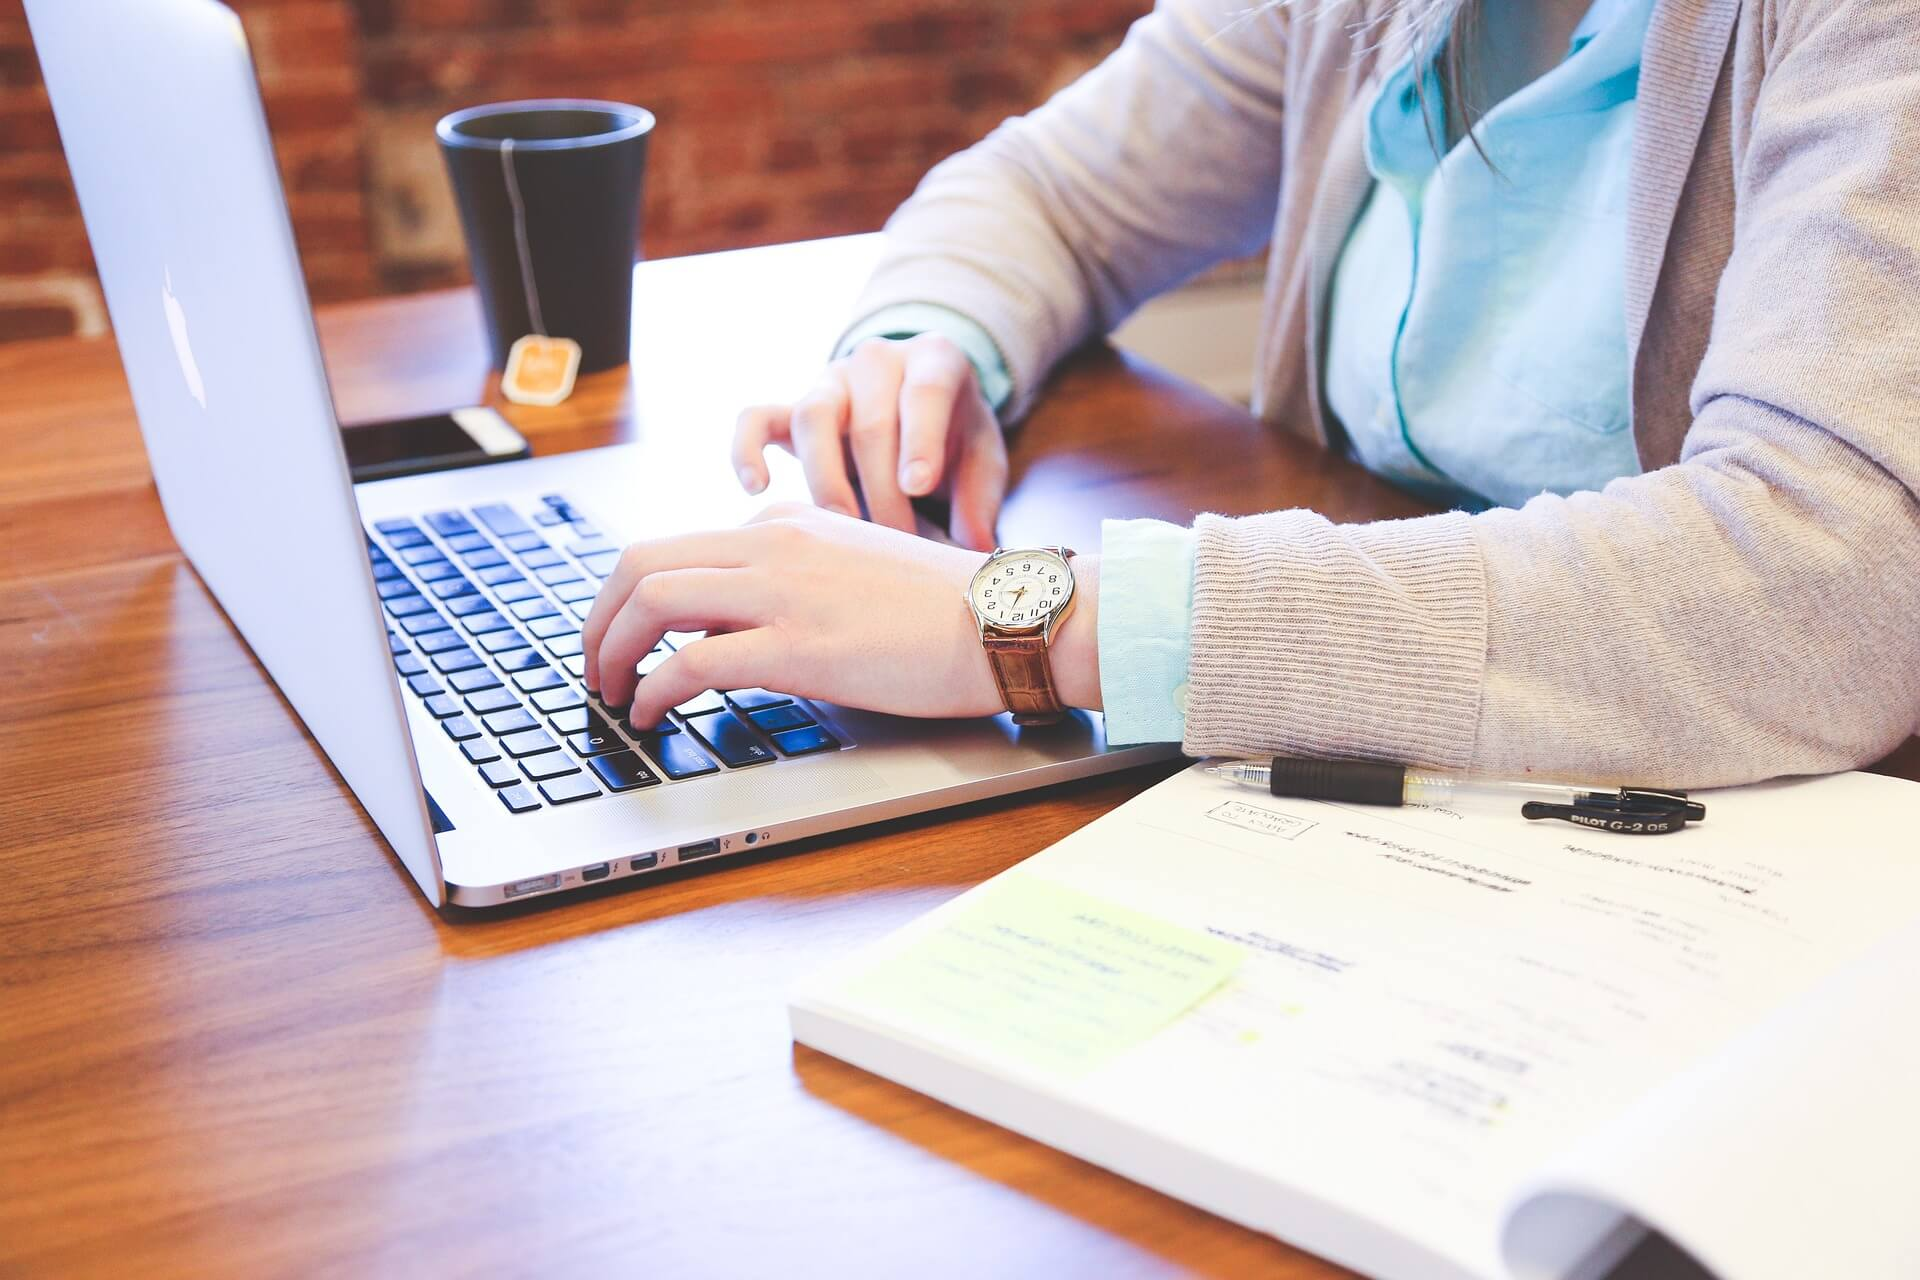 Woman on laptop lms stand for